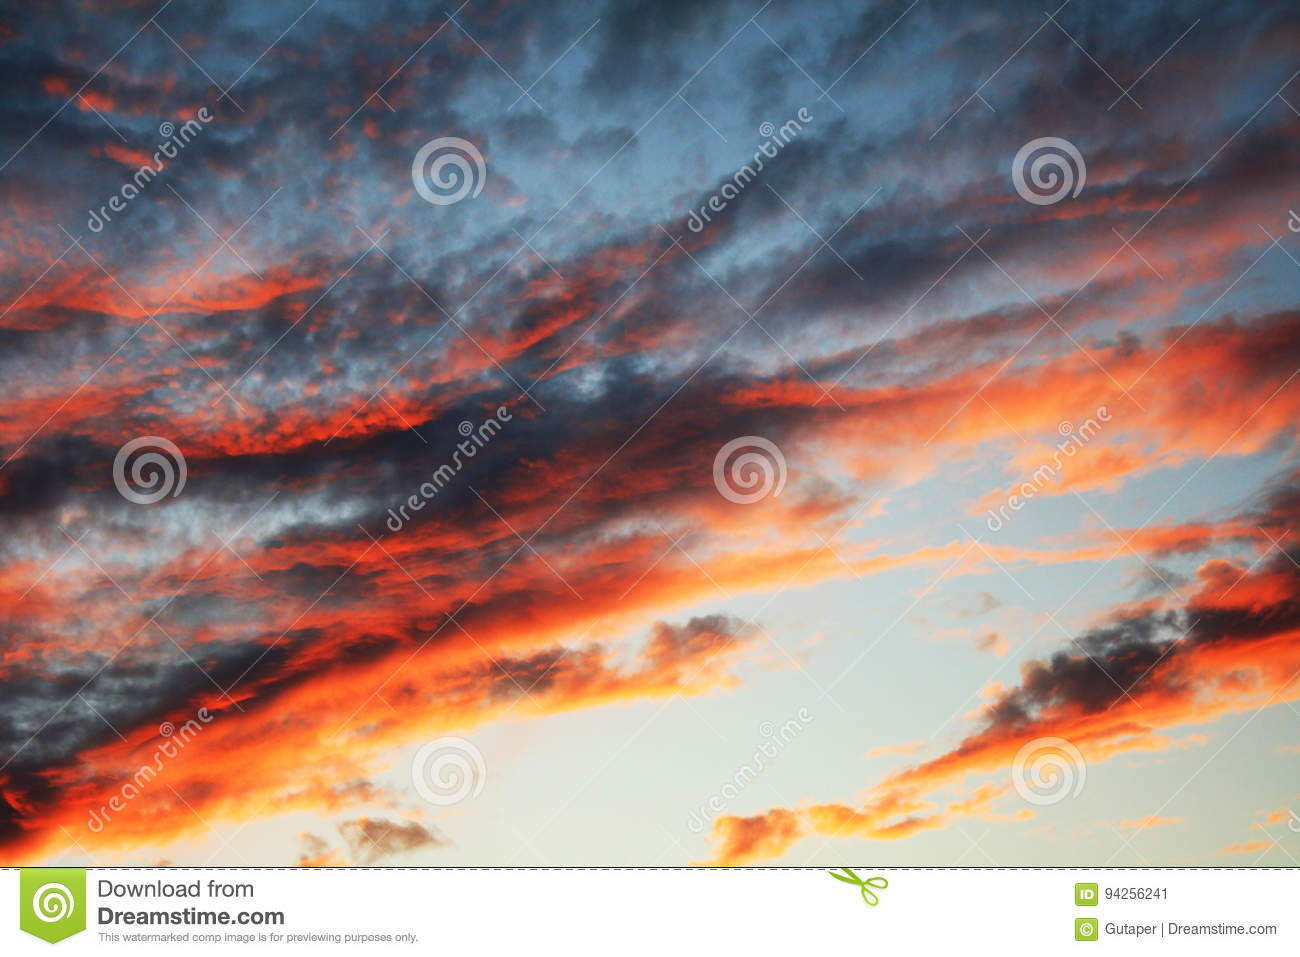 Natural background with a celestial cloudy landscape at sunset